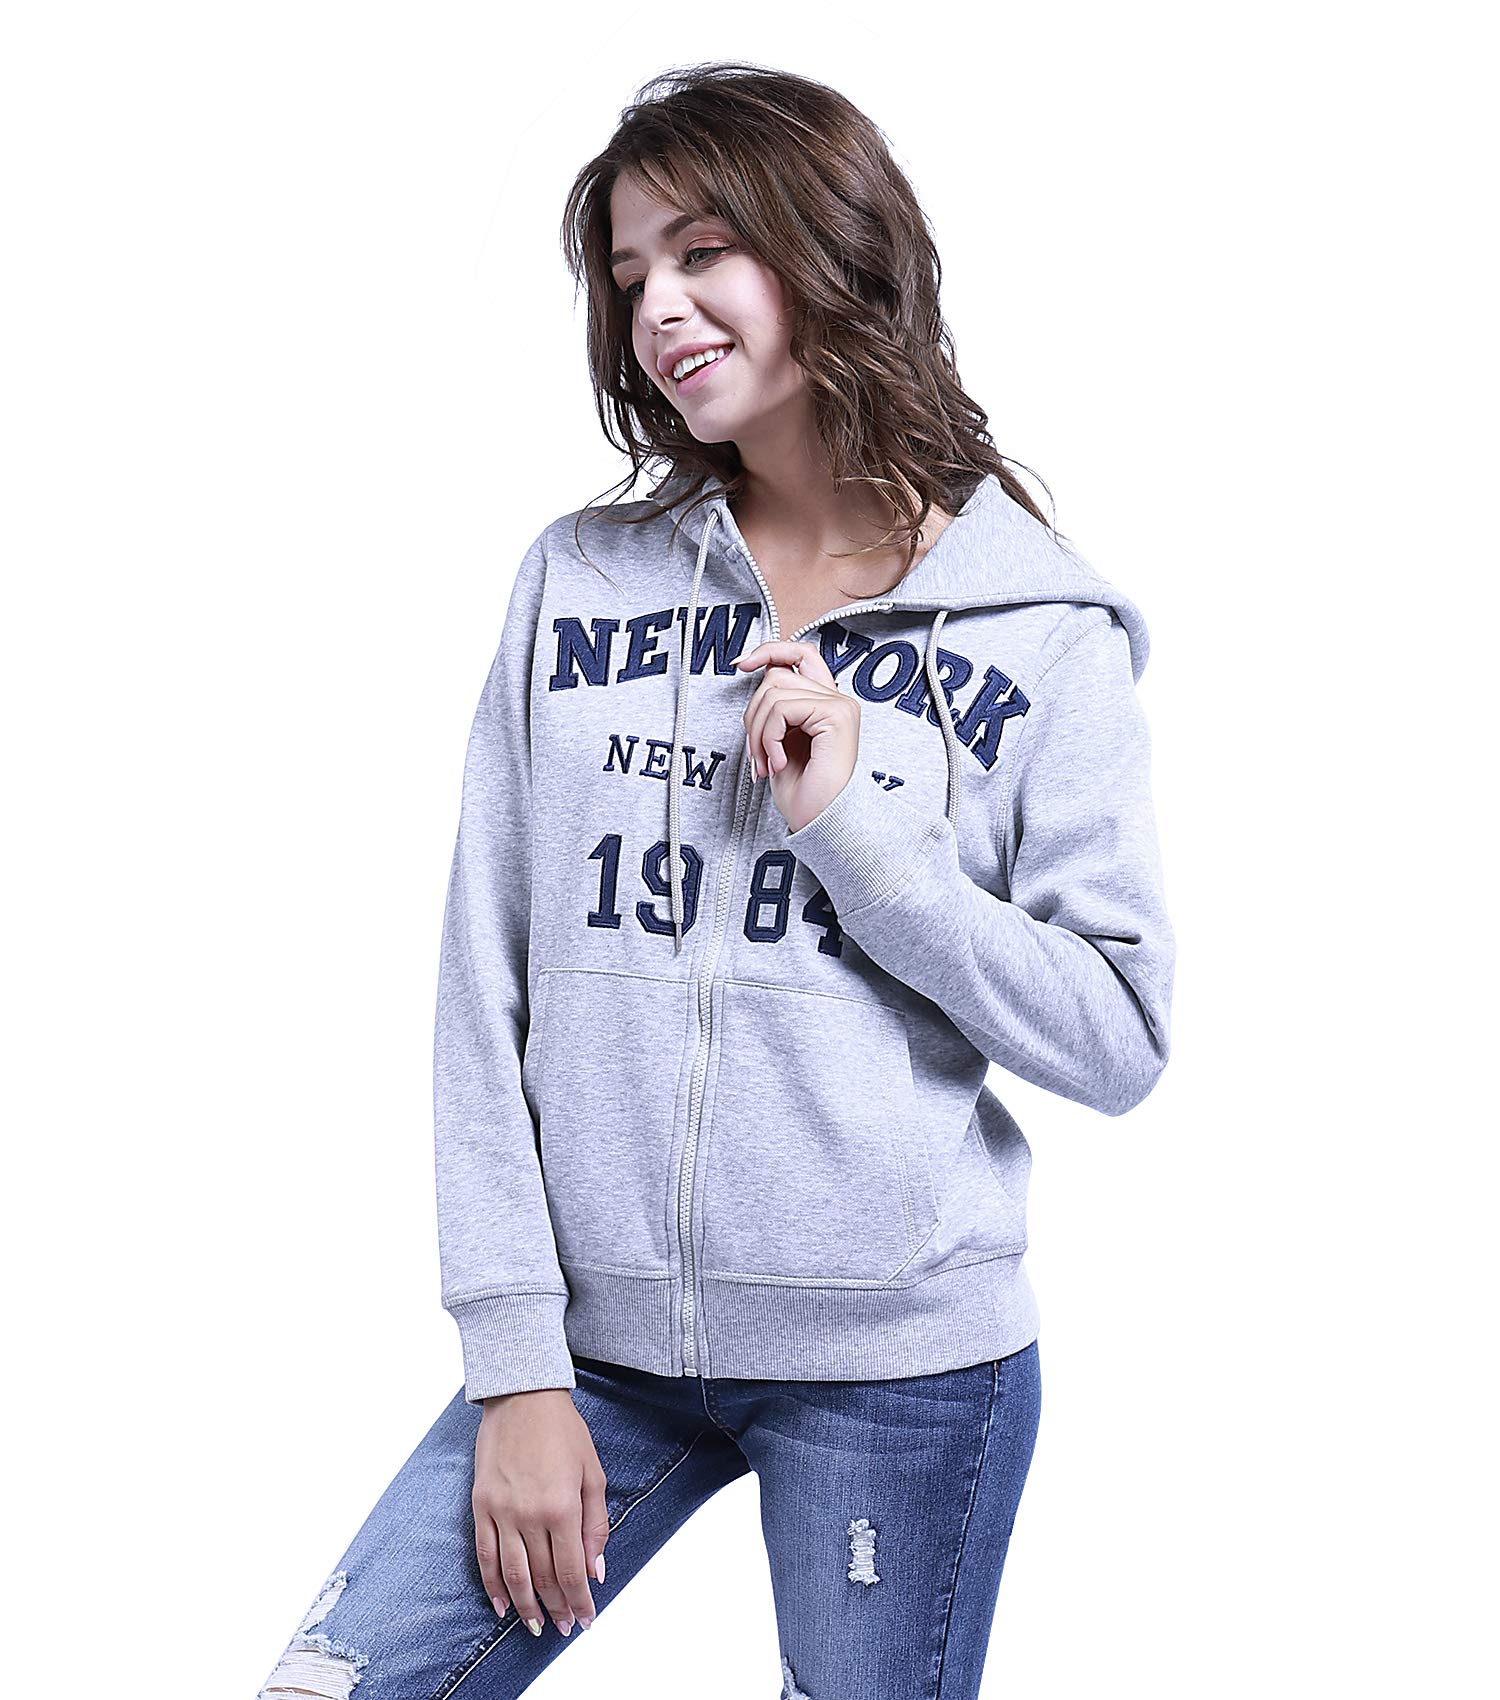 TWO BLOCKS OFF Womens Pull Over Hoodie Long Sleeve with Pockets Casual Pullover Sweatshirt Tops Light Grey Size S